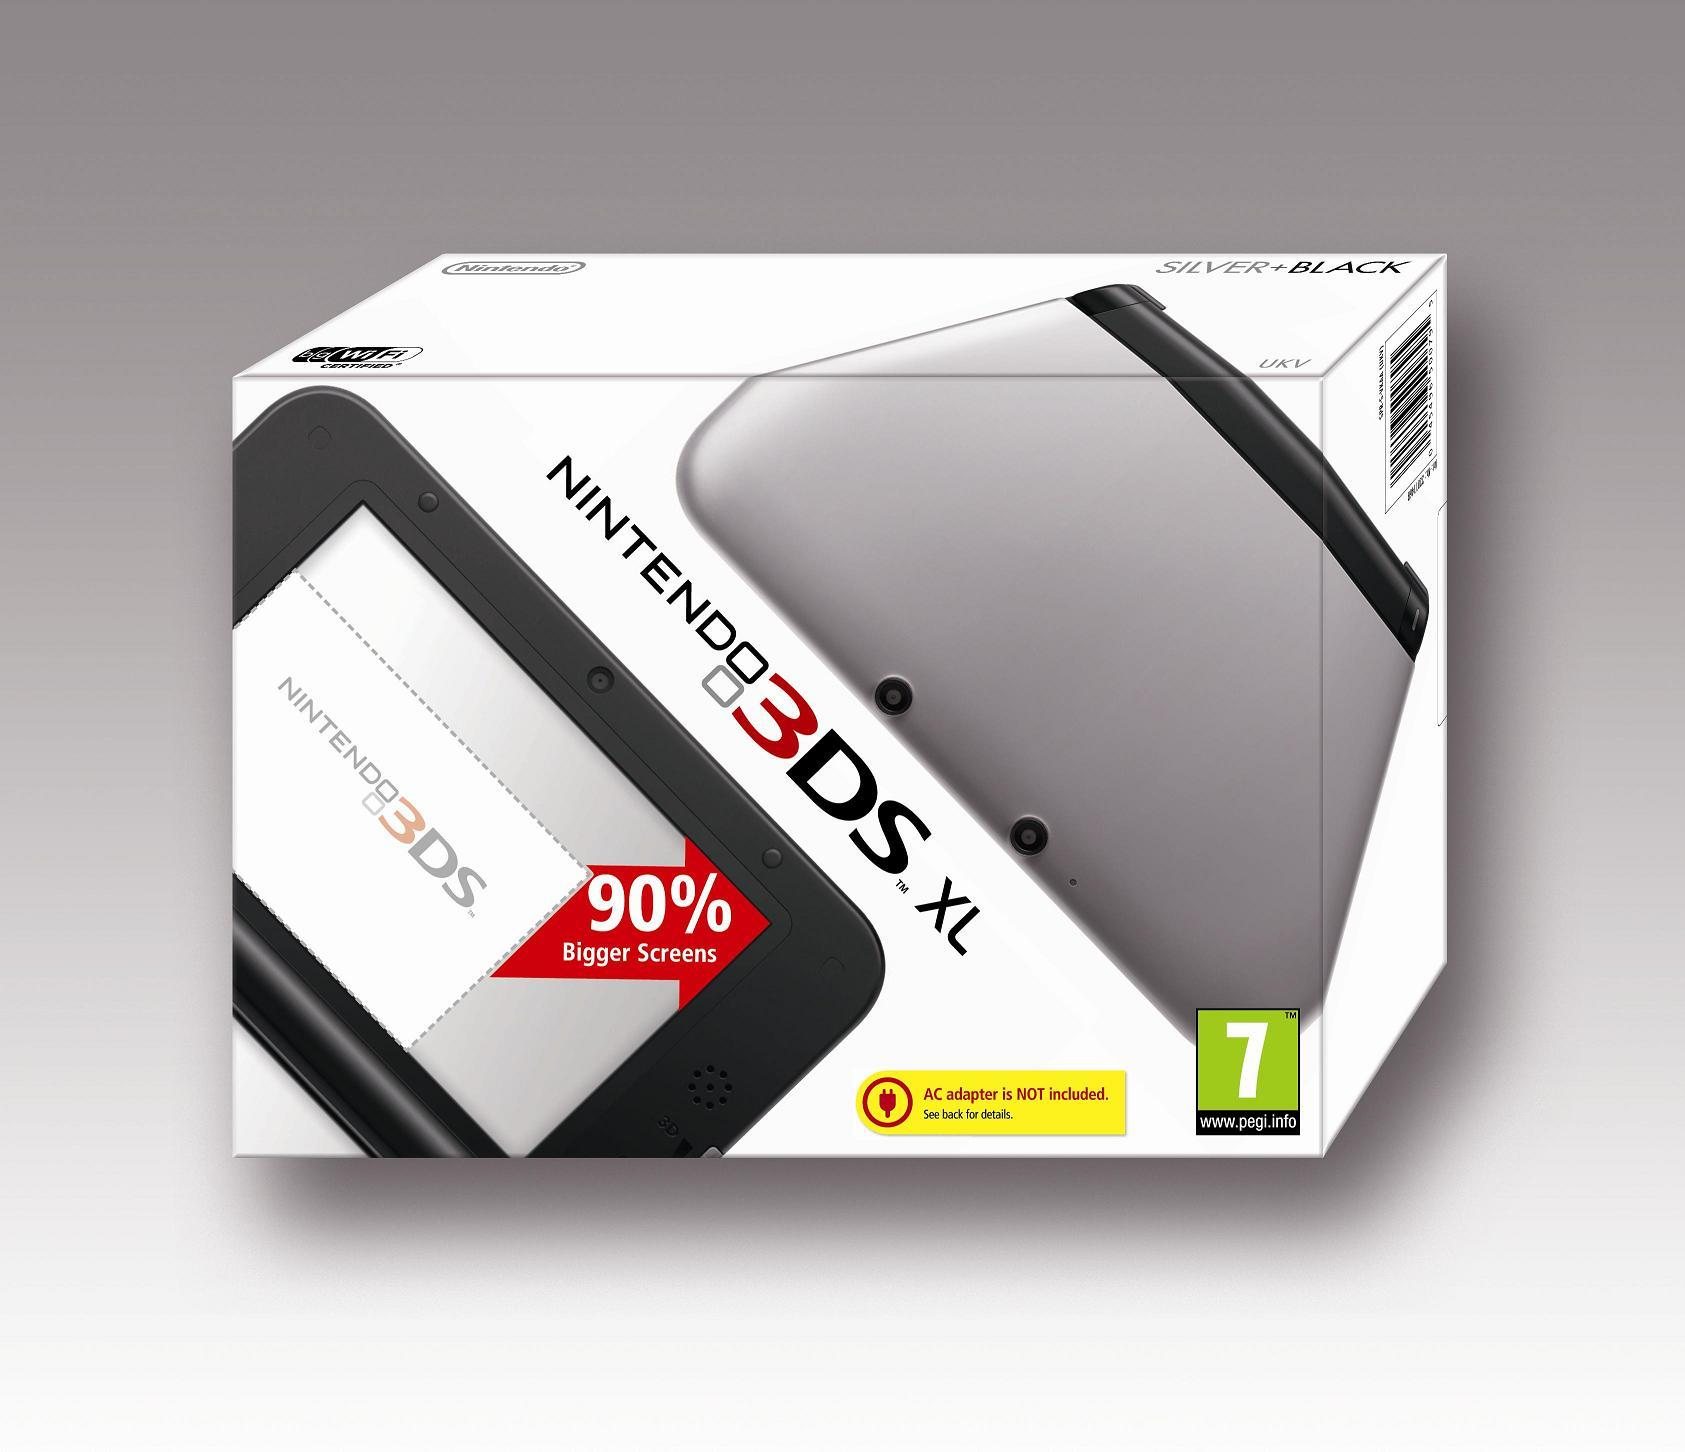 3DS XL Hardware Silver and Black 1